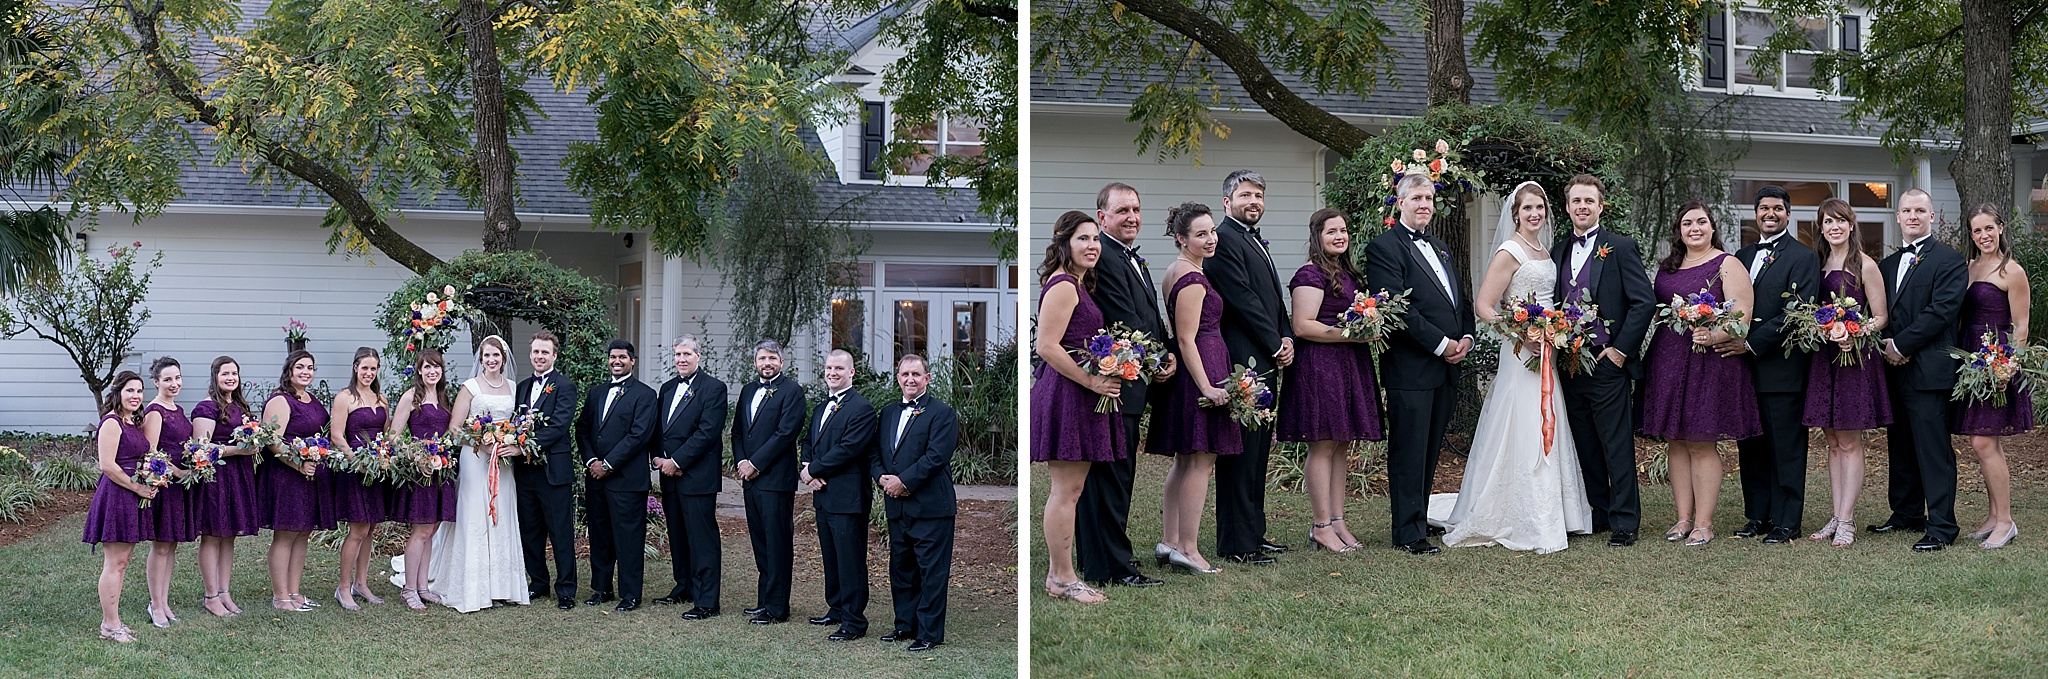 Matthews-House-Wedding-Photographer-Cary-NC-119.jpg